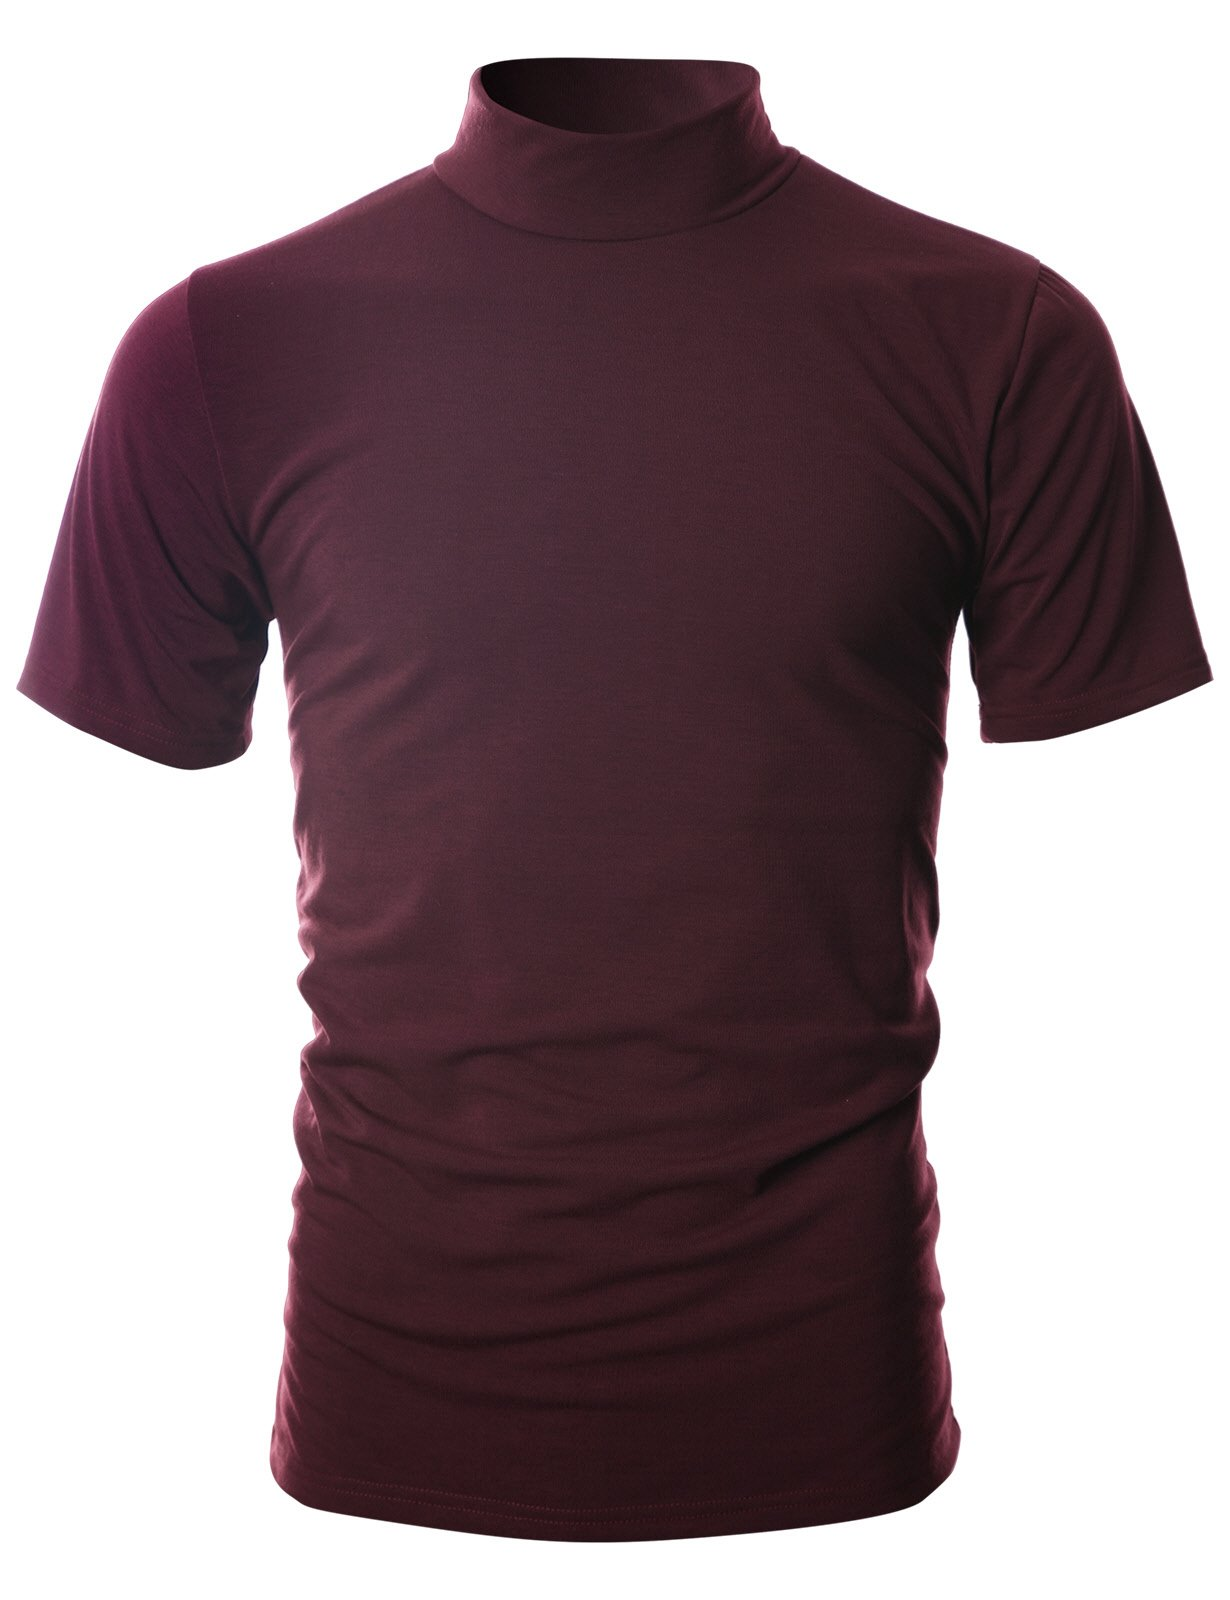 Ohoo Mens Slim Fit Soft Cotton Short Sleeve Pullover Lightweight Turtleneck Warm Inside /DCT101-BURGUNDY-2XL by Ohoo (Image #2)